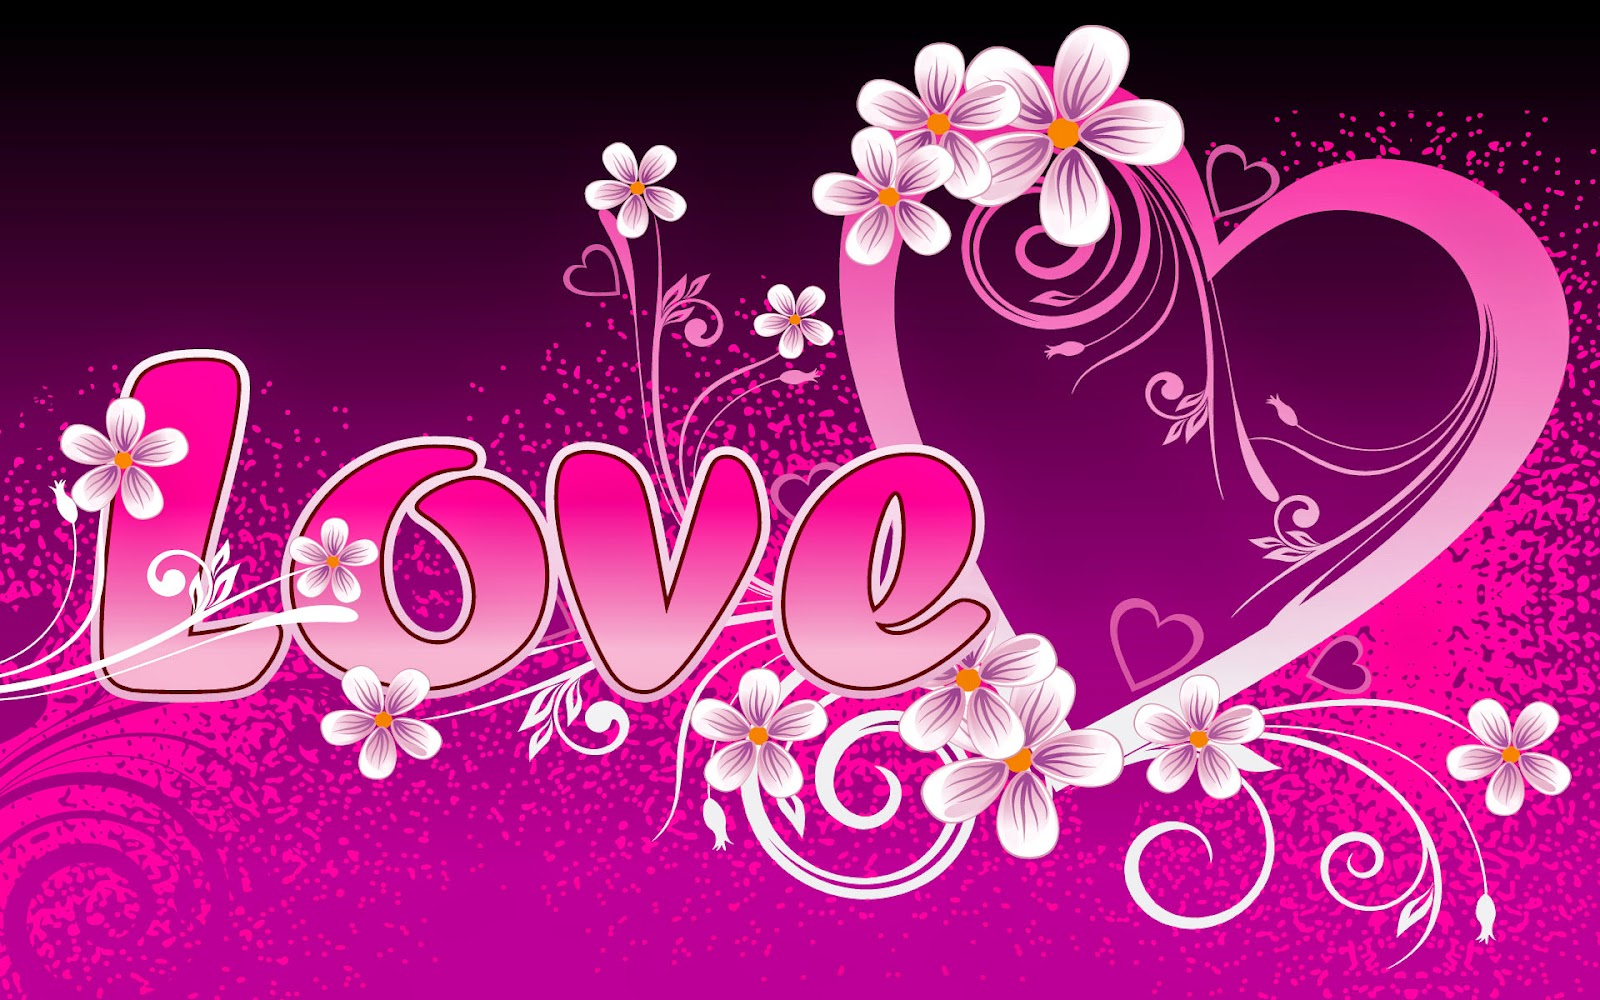 Beautiful Love Wallpaper Hd: HD WALLPAPER: Most Beautiful Love Wallpapers(High